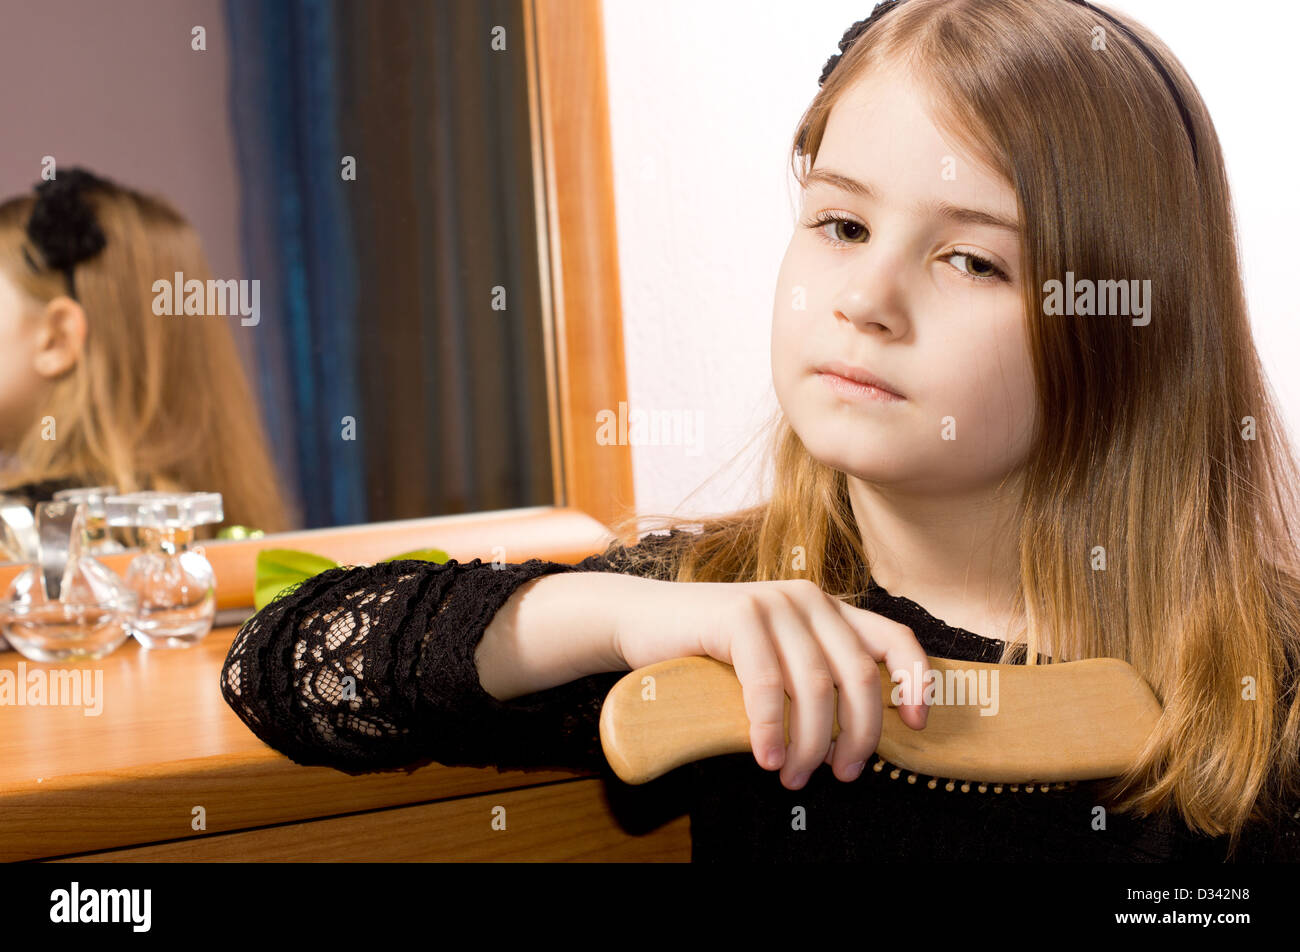 Sad pretty little girl brushing her long blonde hair with a hairbrush reflected in the mirror of the dressing table - Stock Image